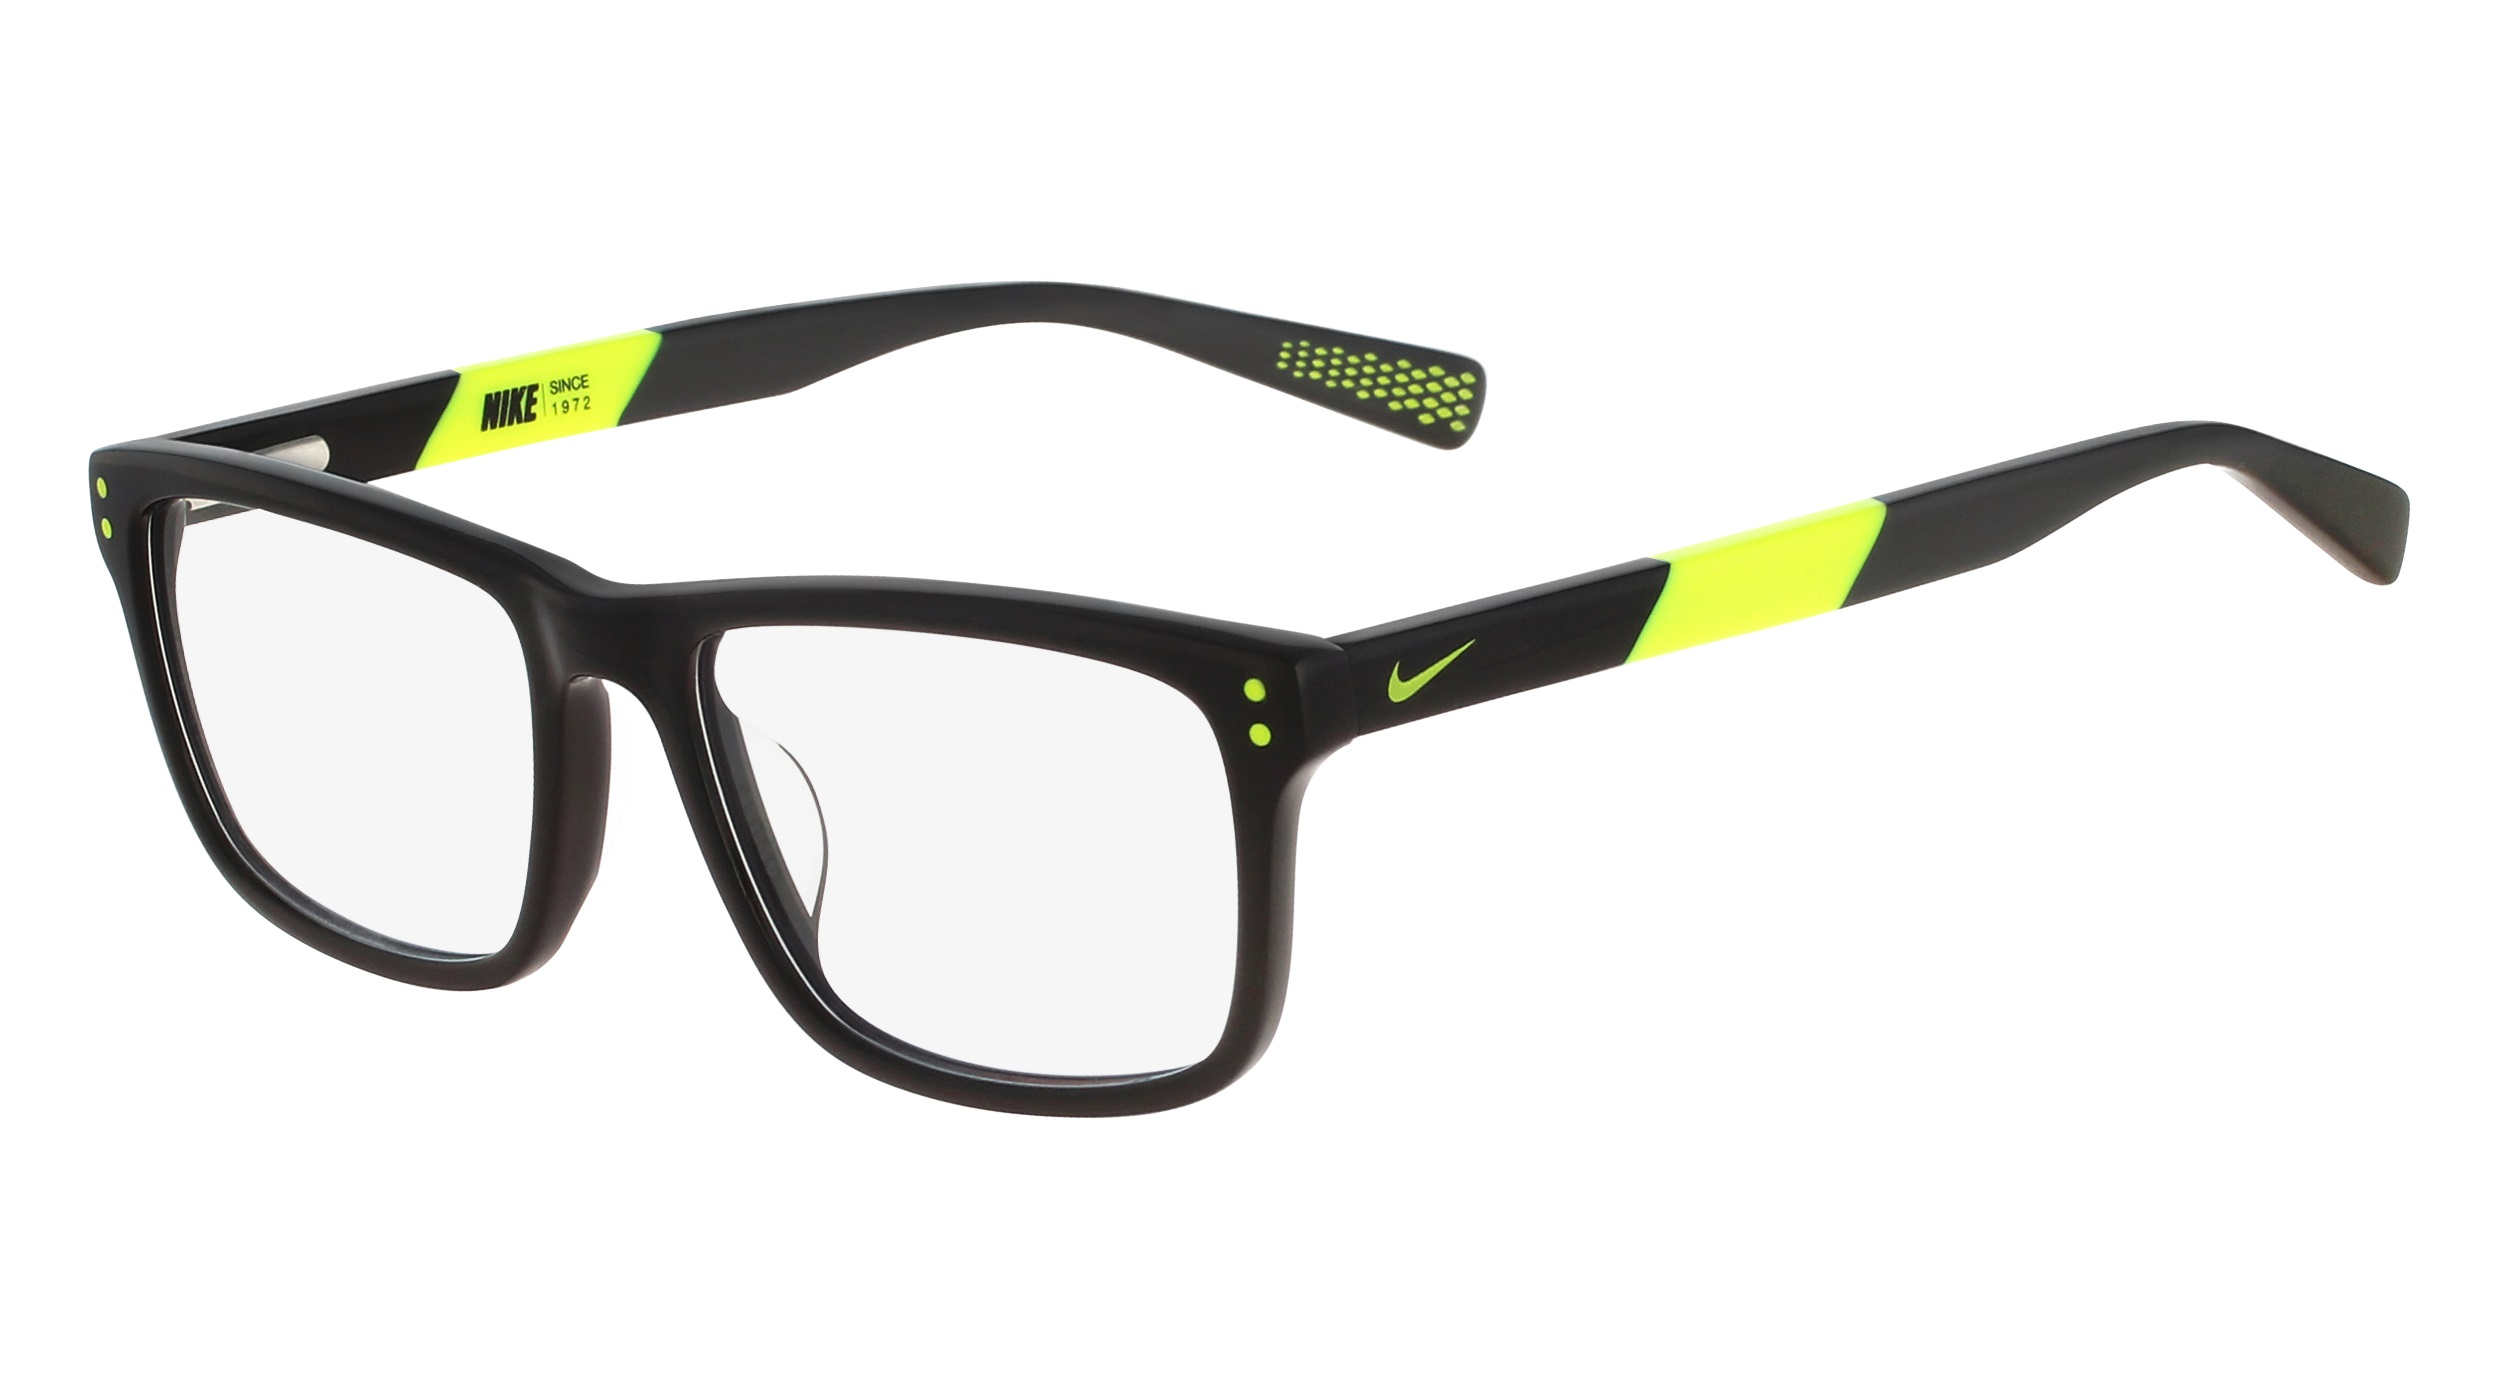 75755da8ad71 Nike 5536-010 Kids Eyeglasses Black Volt Nike5536-010 - Optiwow